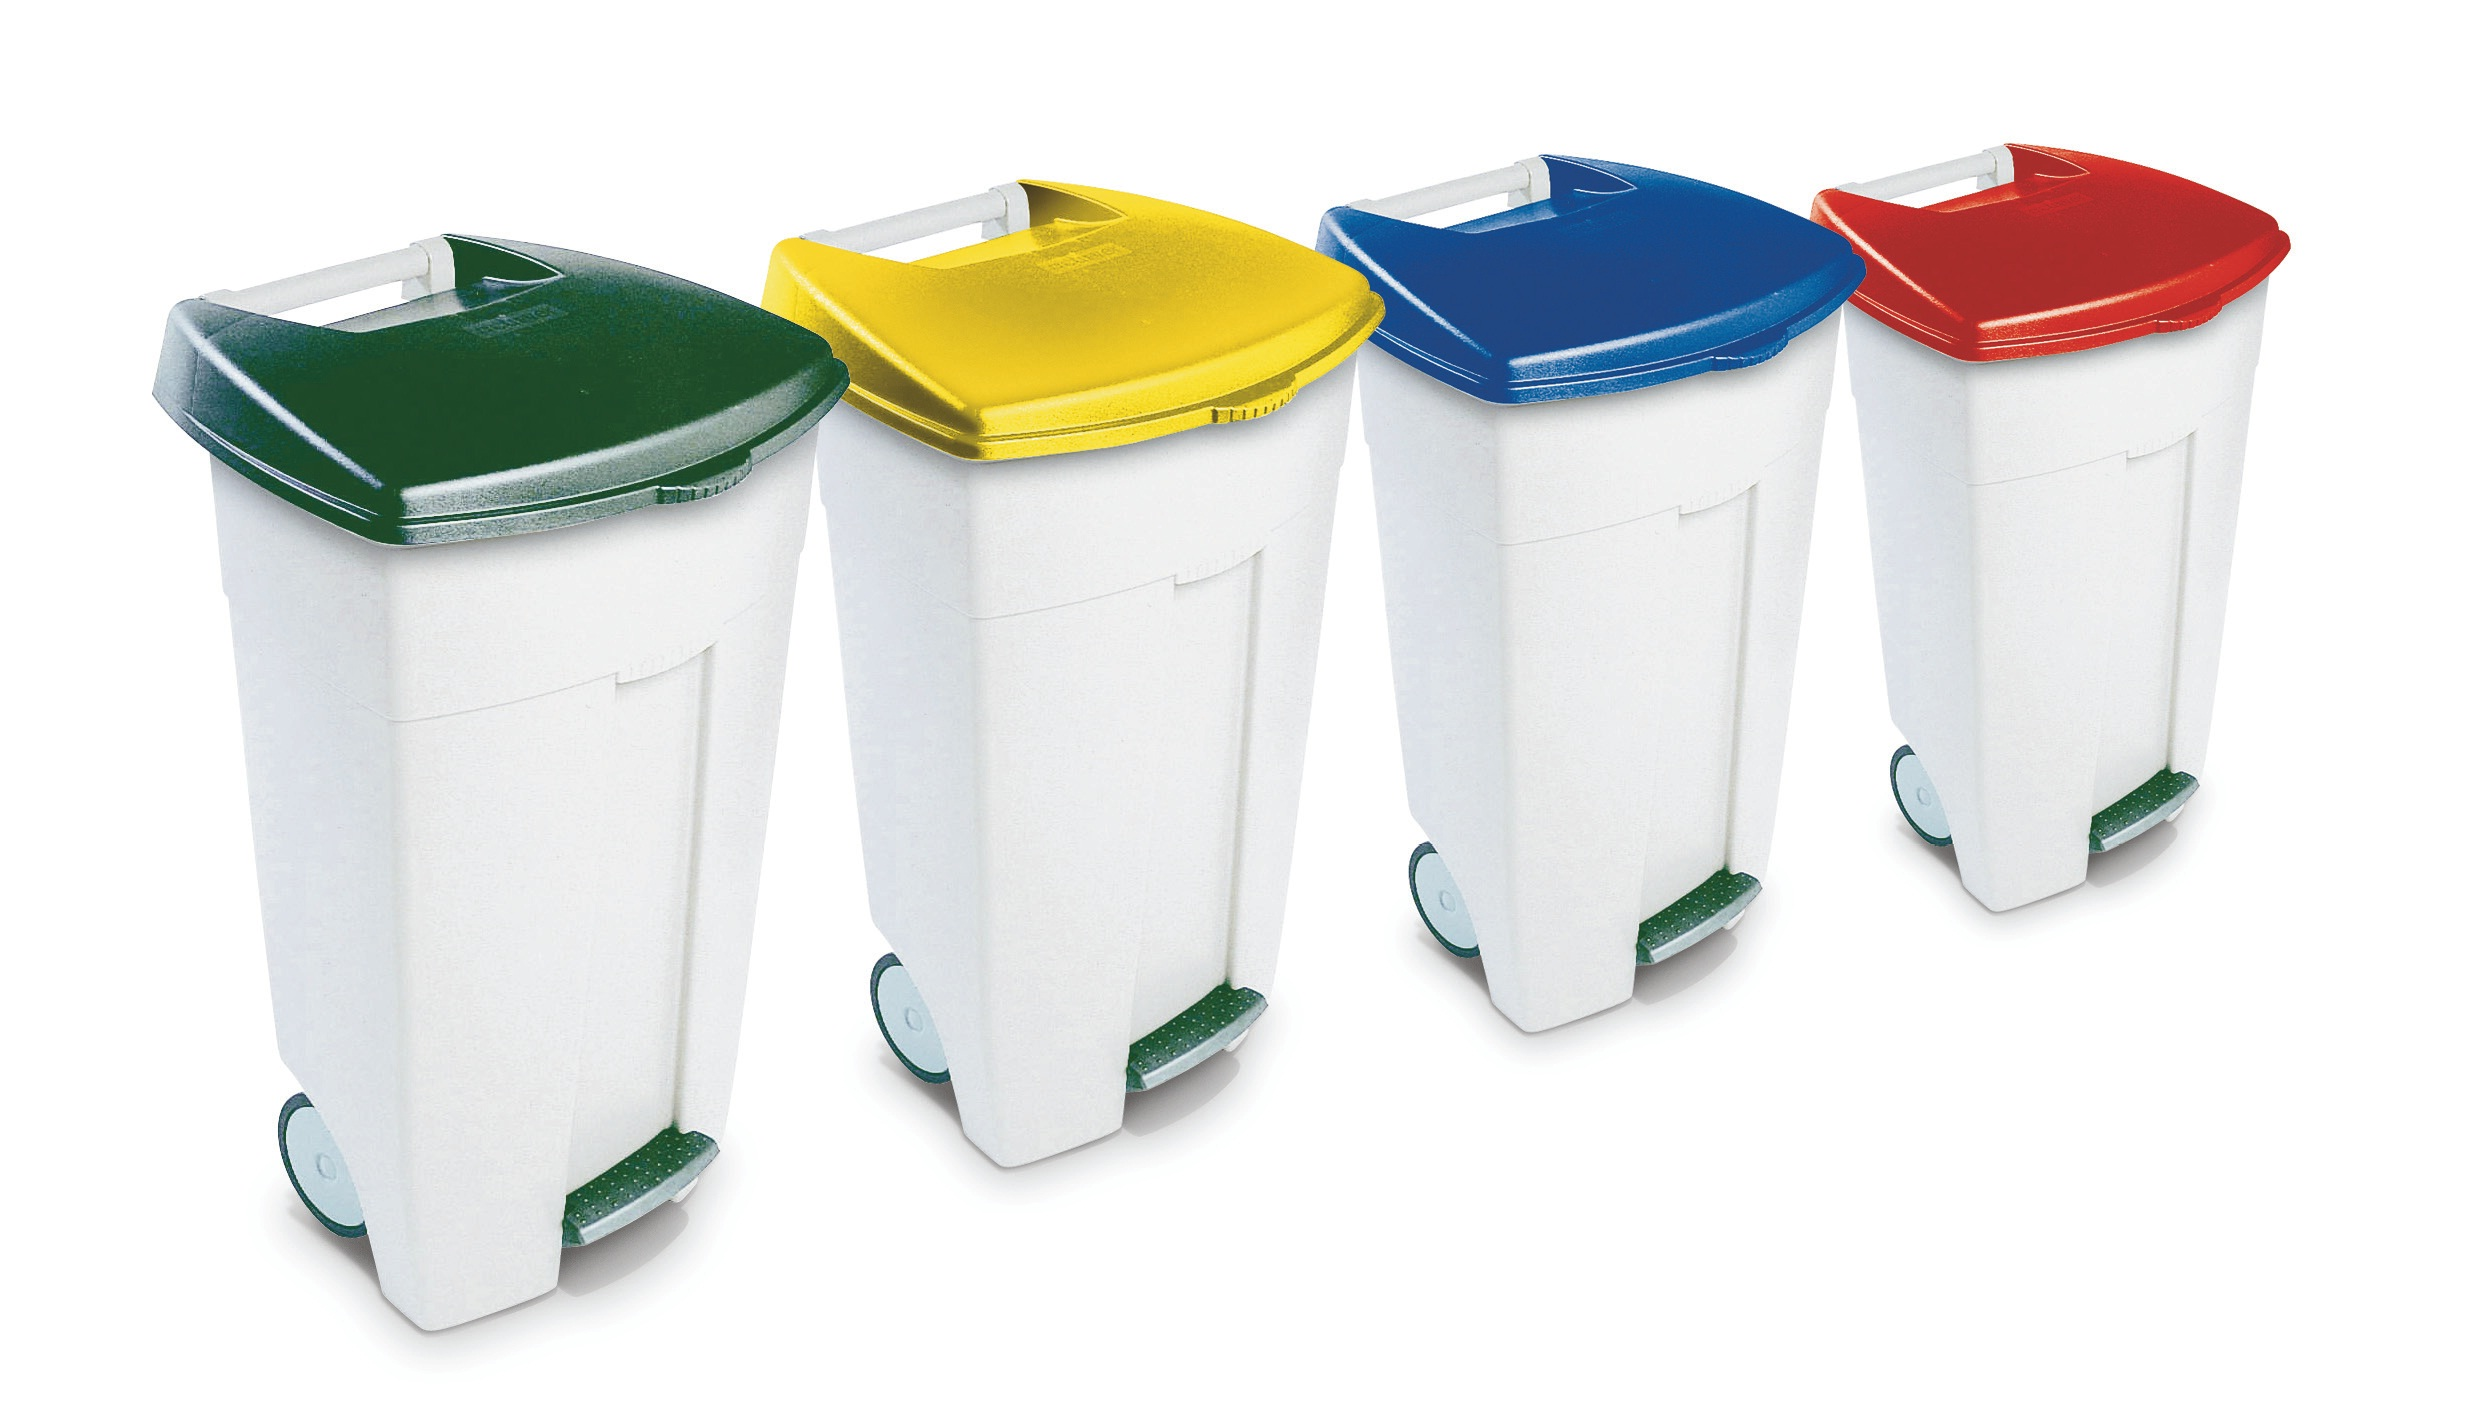 Image Result For Rubbermaid Recycle Bins